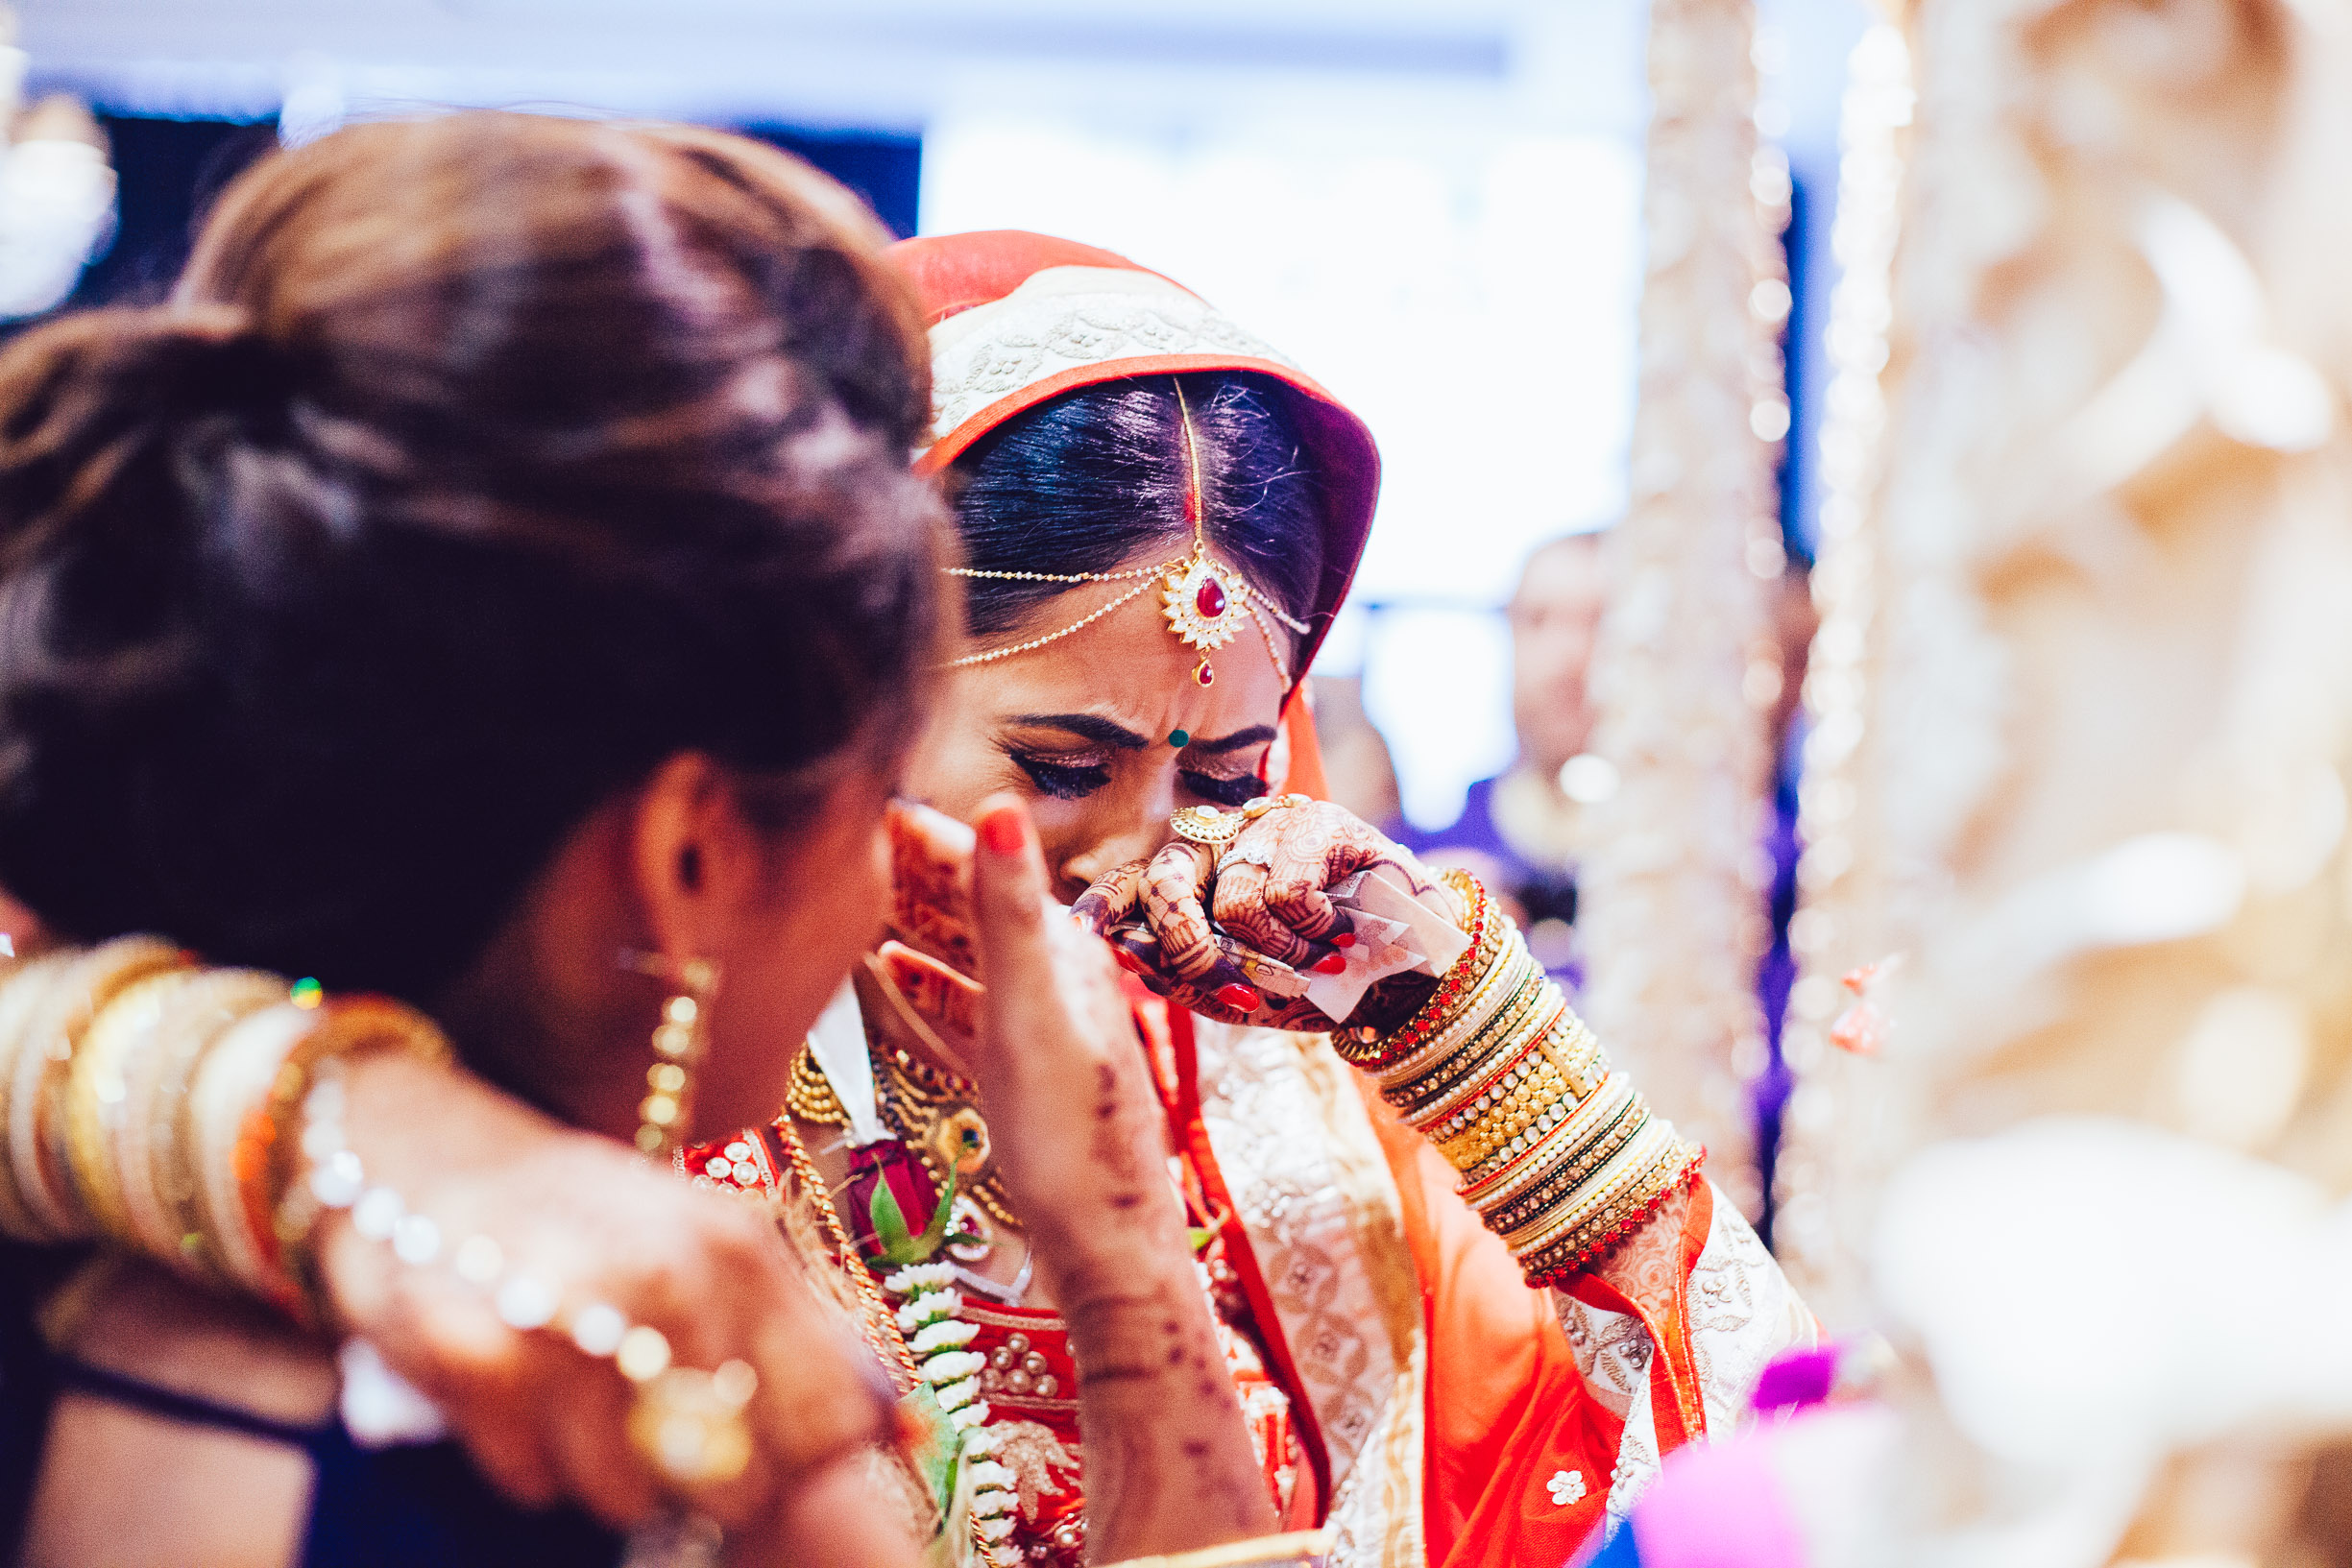 amit&ceema_eden_moments_wedding_photography-22